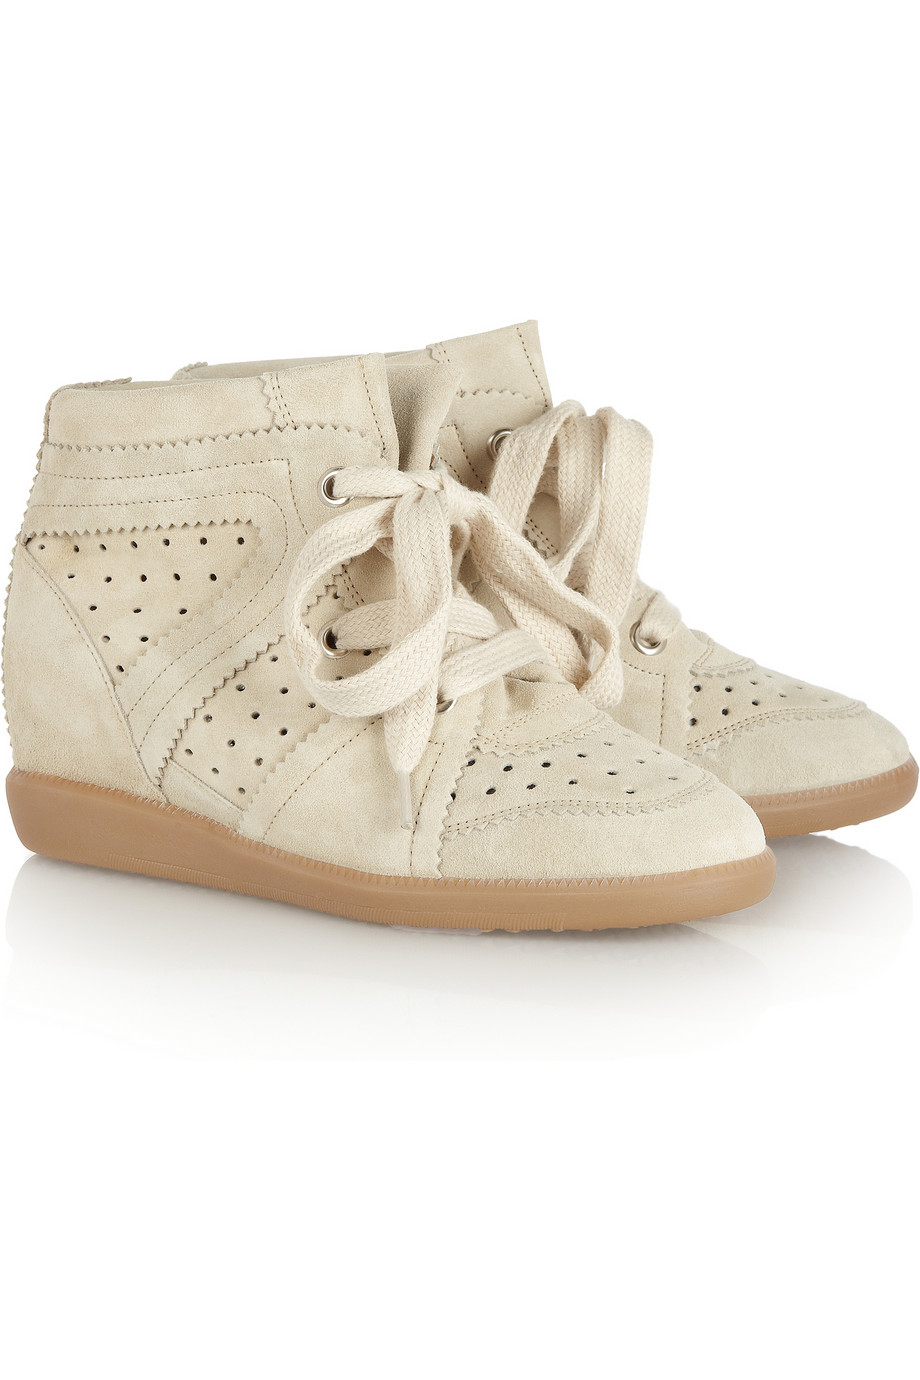 isabel-marant-chalk-bobby-suede-sneakers-product-1-6156186-469075391.jpeg